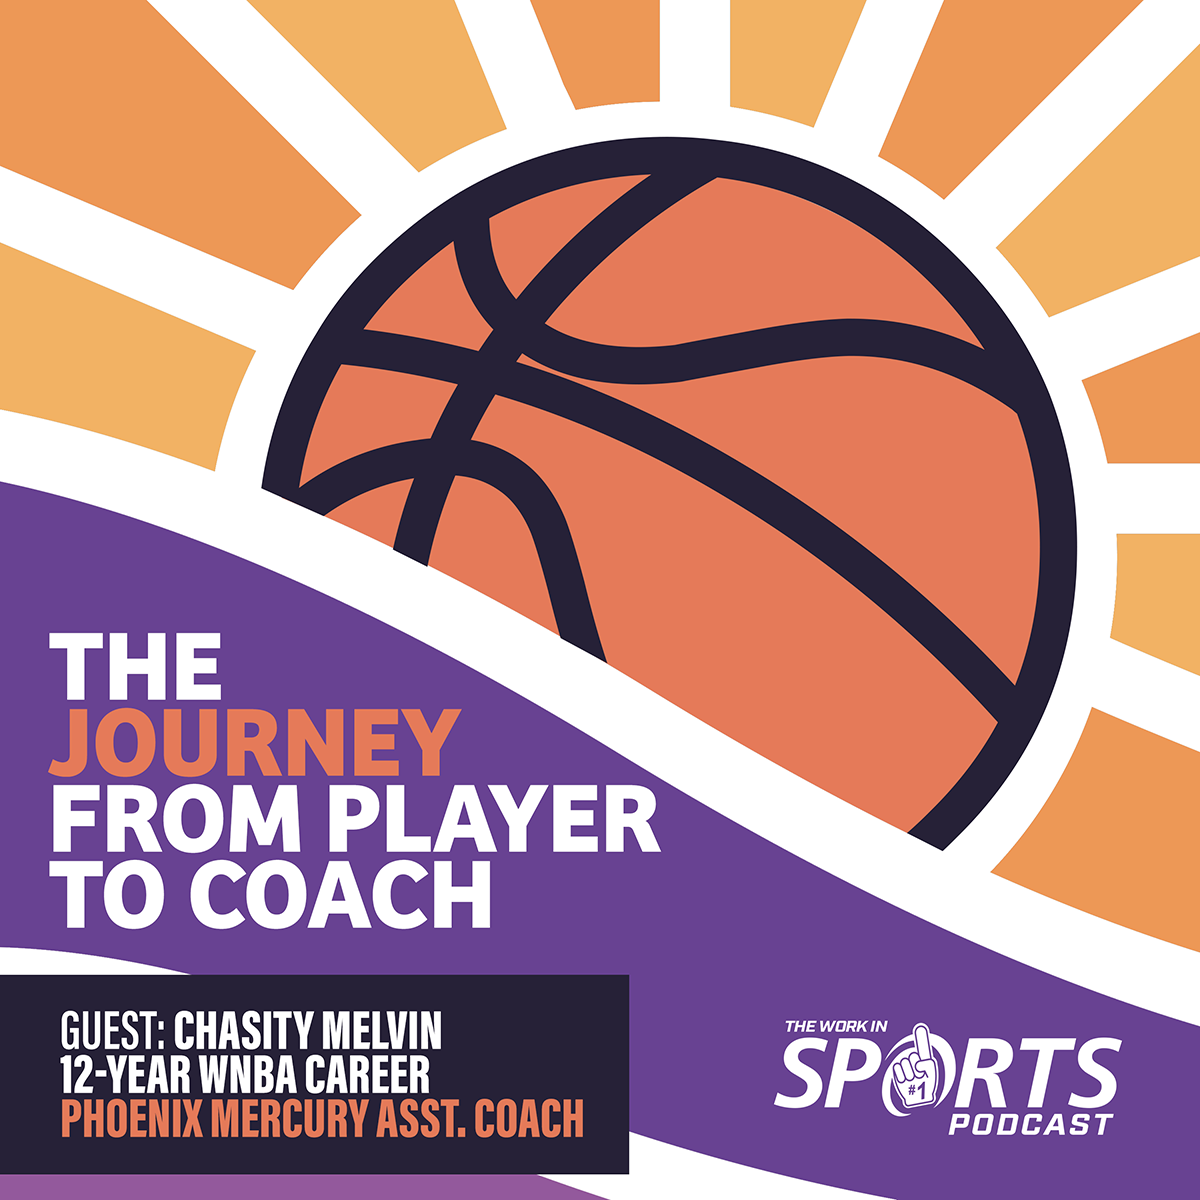 Artwork for podcast The Work in Sports Podcast - Insider Advice for Sports Careers